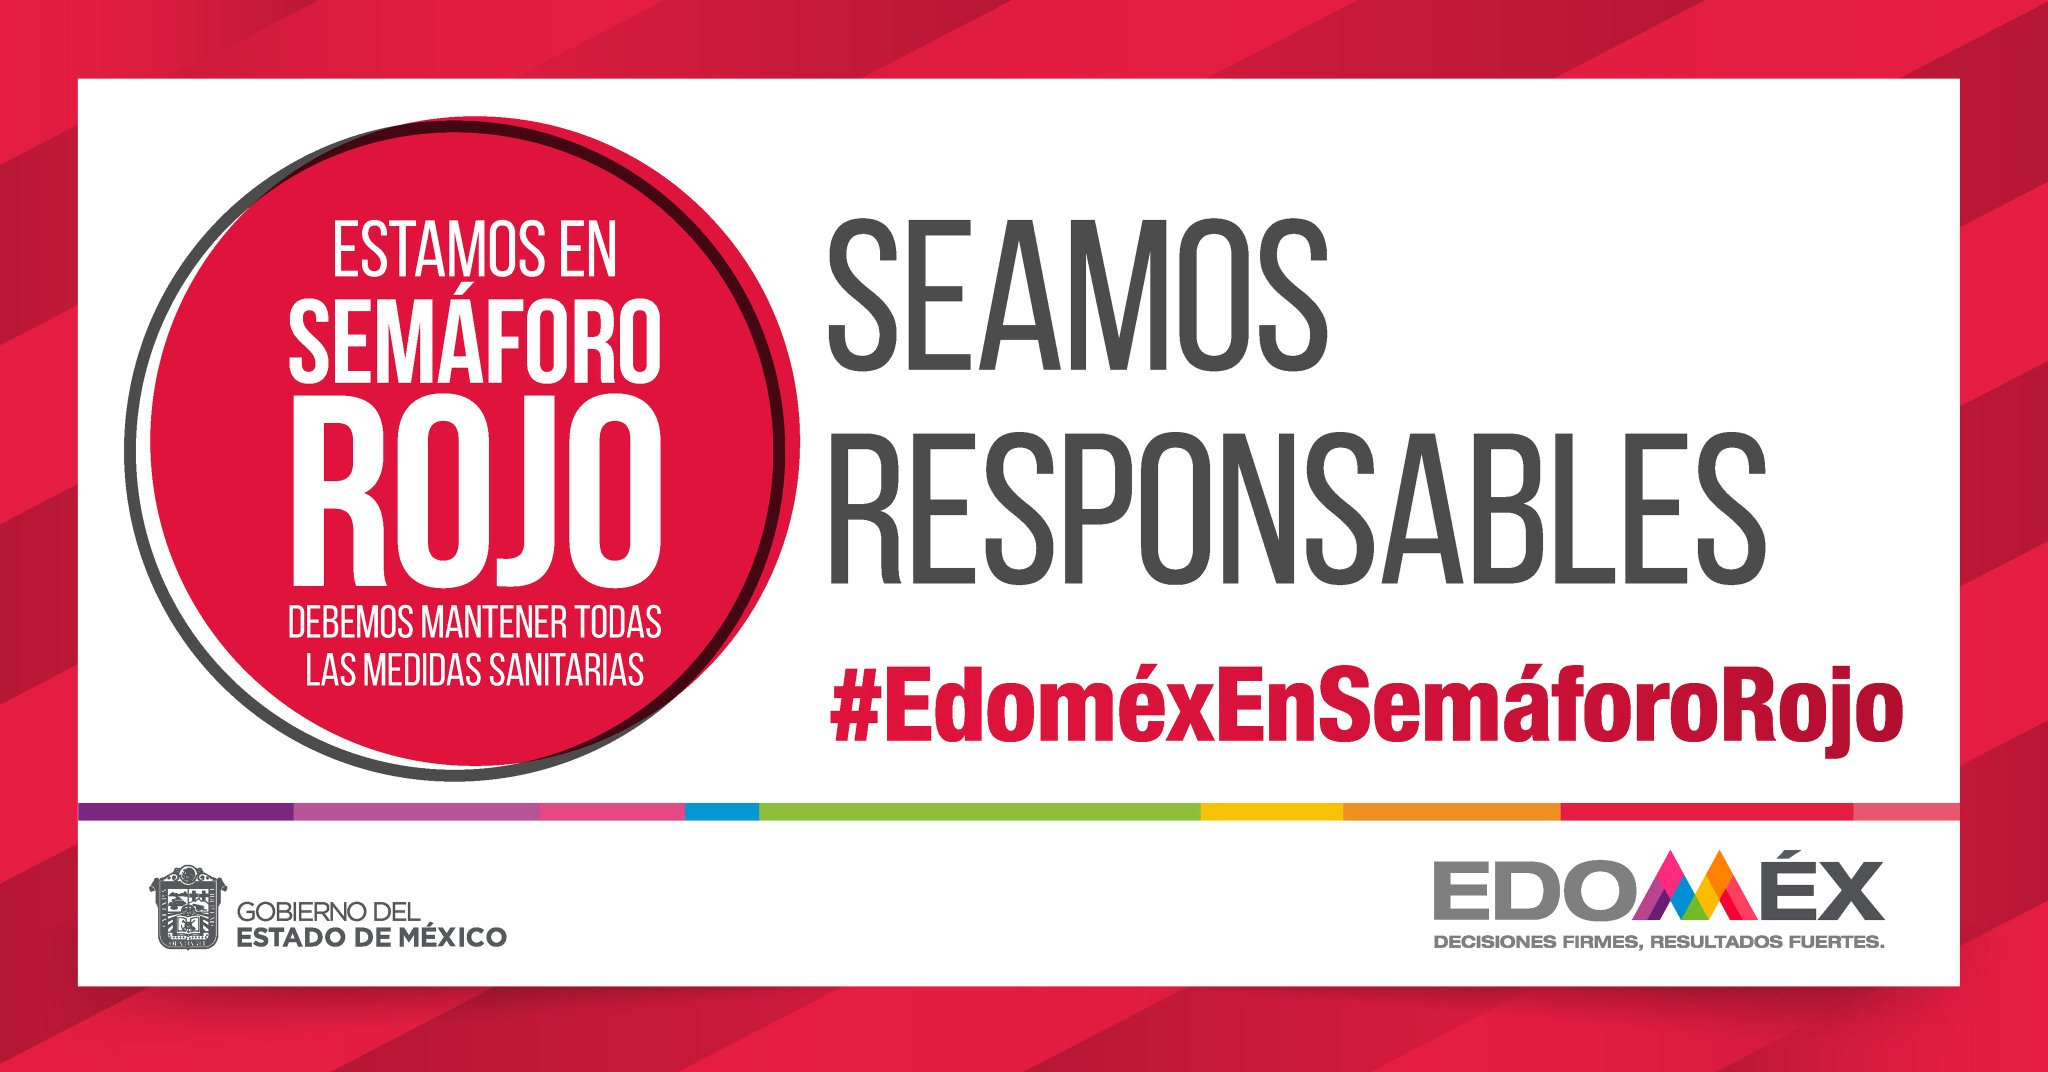 #EdomexEnSemaforoRojo Photo,#EdomexEnSemaforoRojo Twitter Trend : Most Popular Tweets